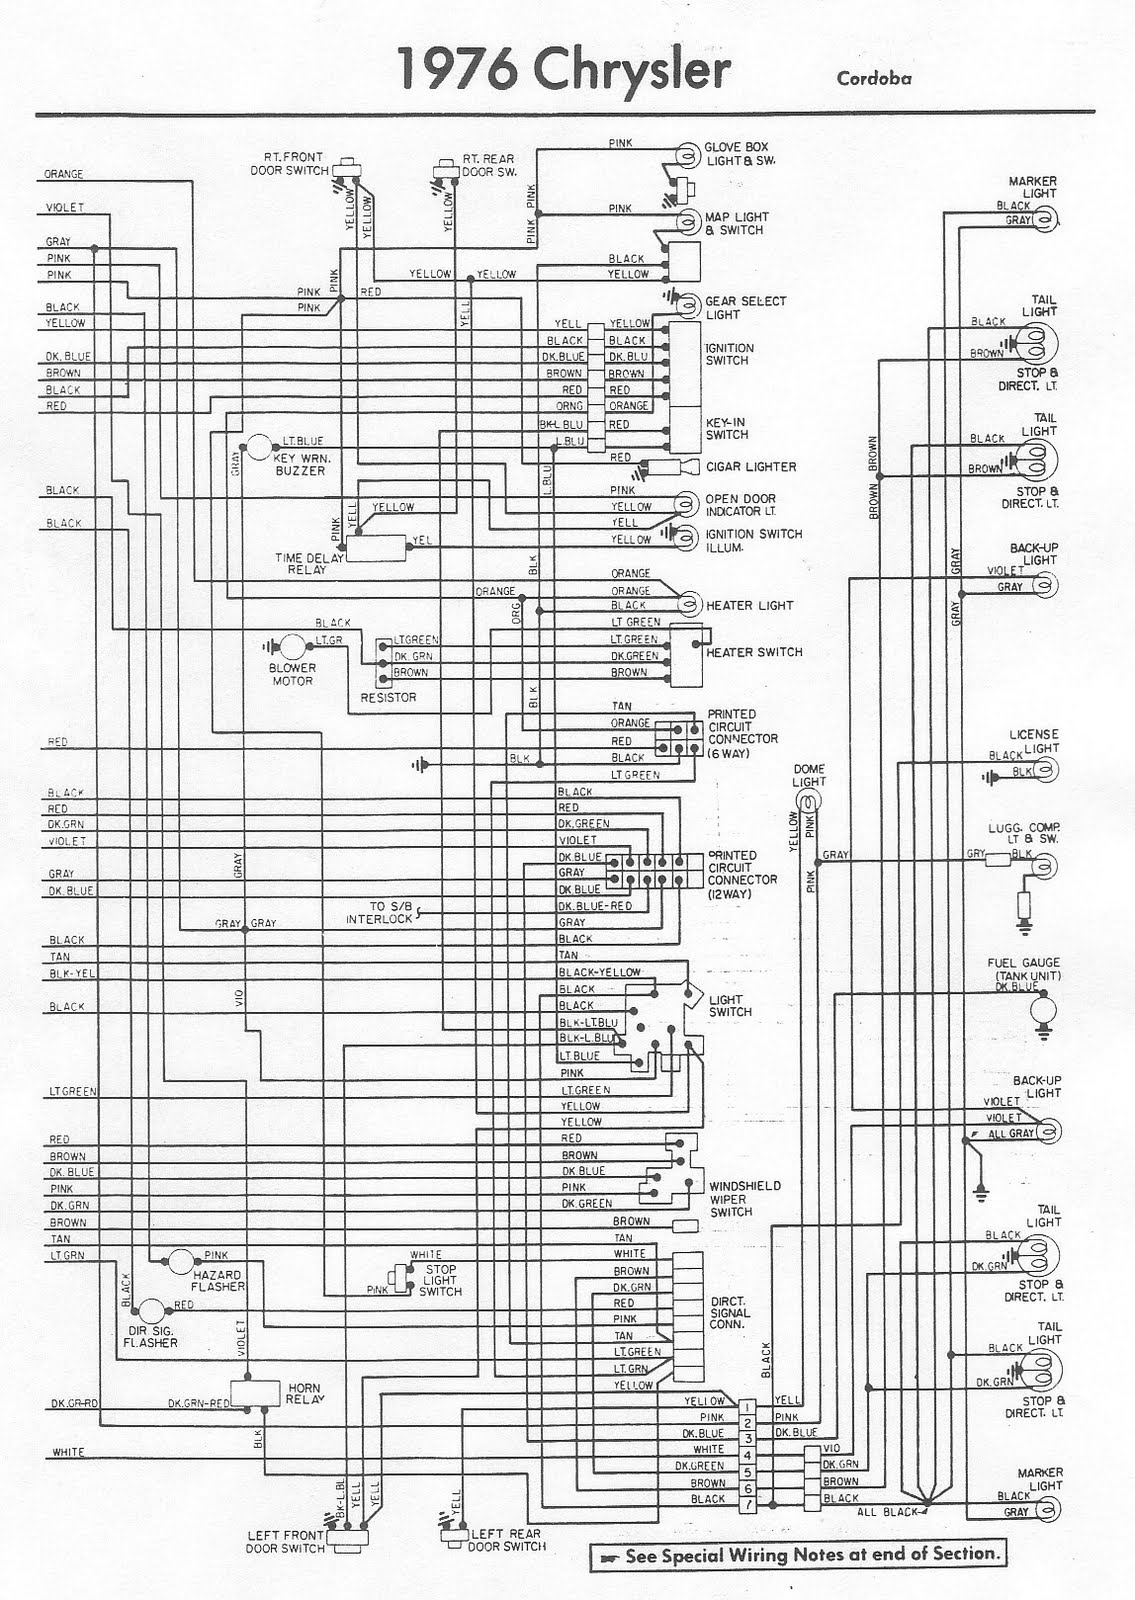 1965 Ford F100 Ignition Switch Wiring Diagram, 1965, Get